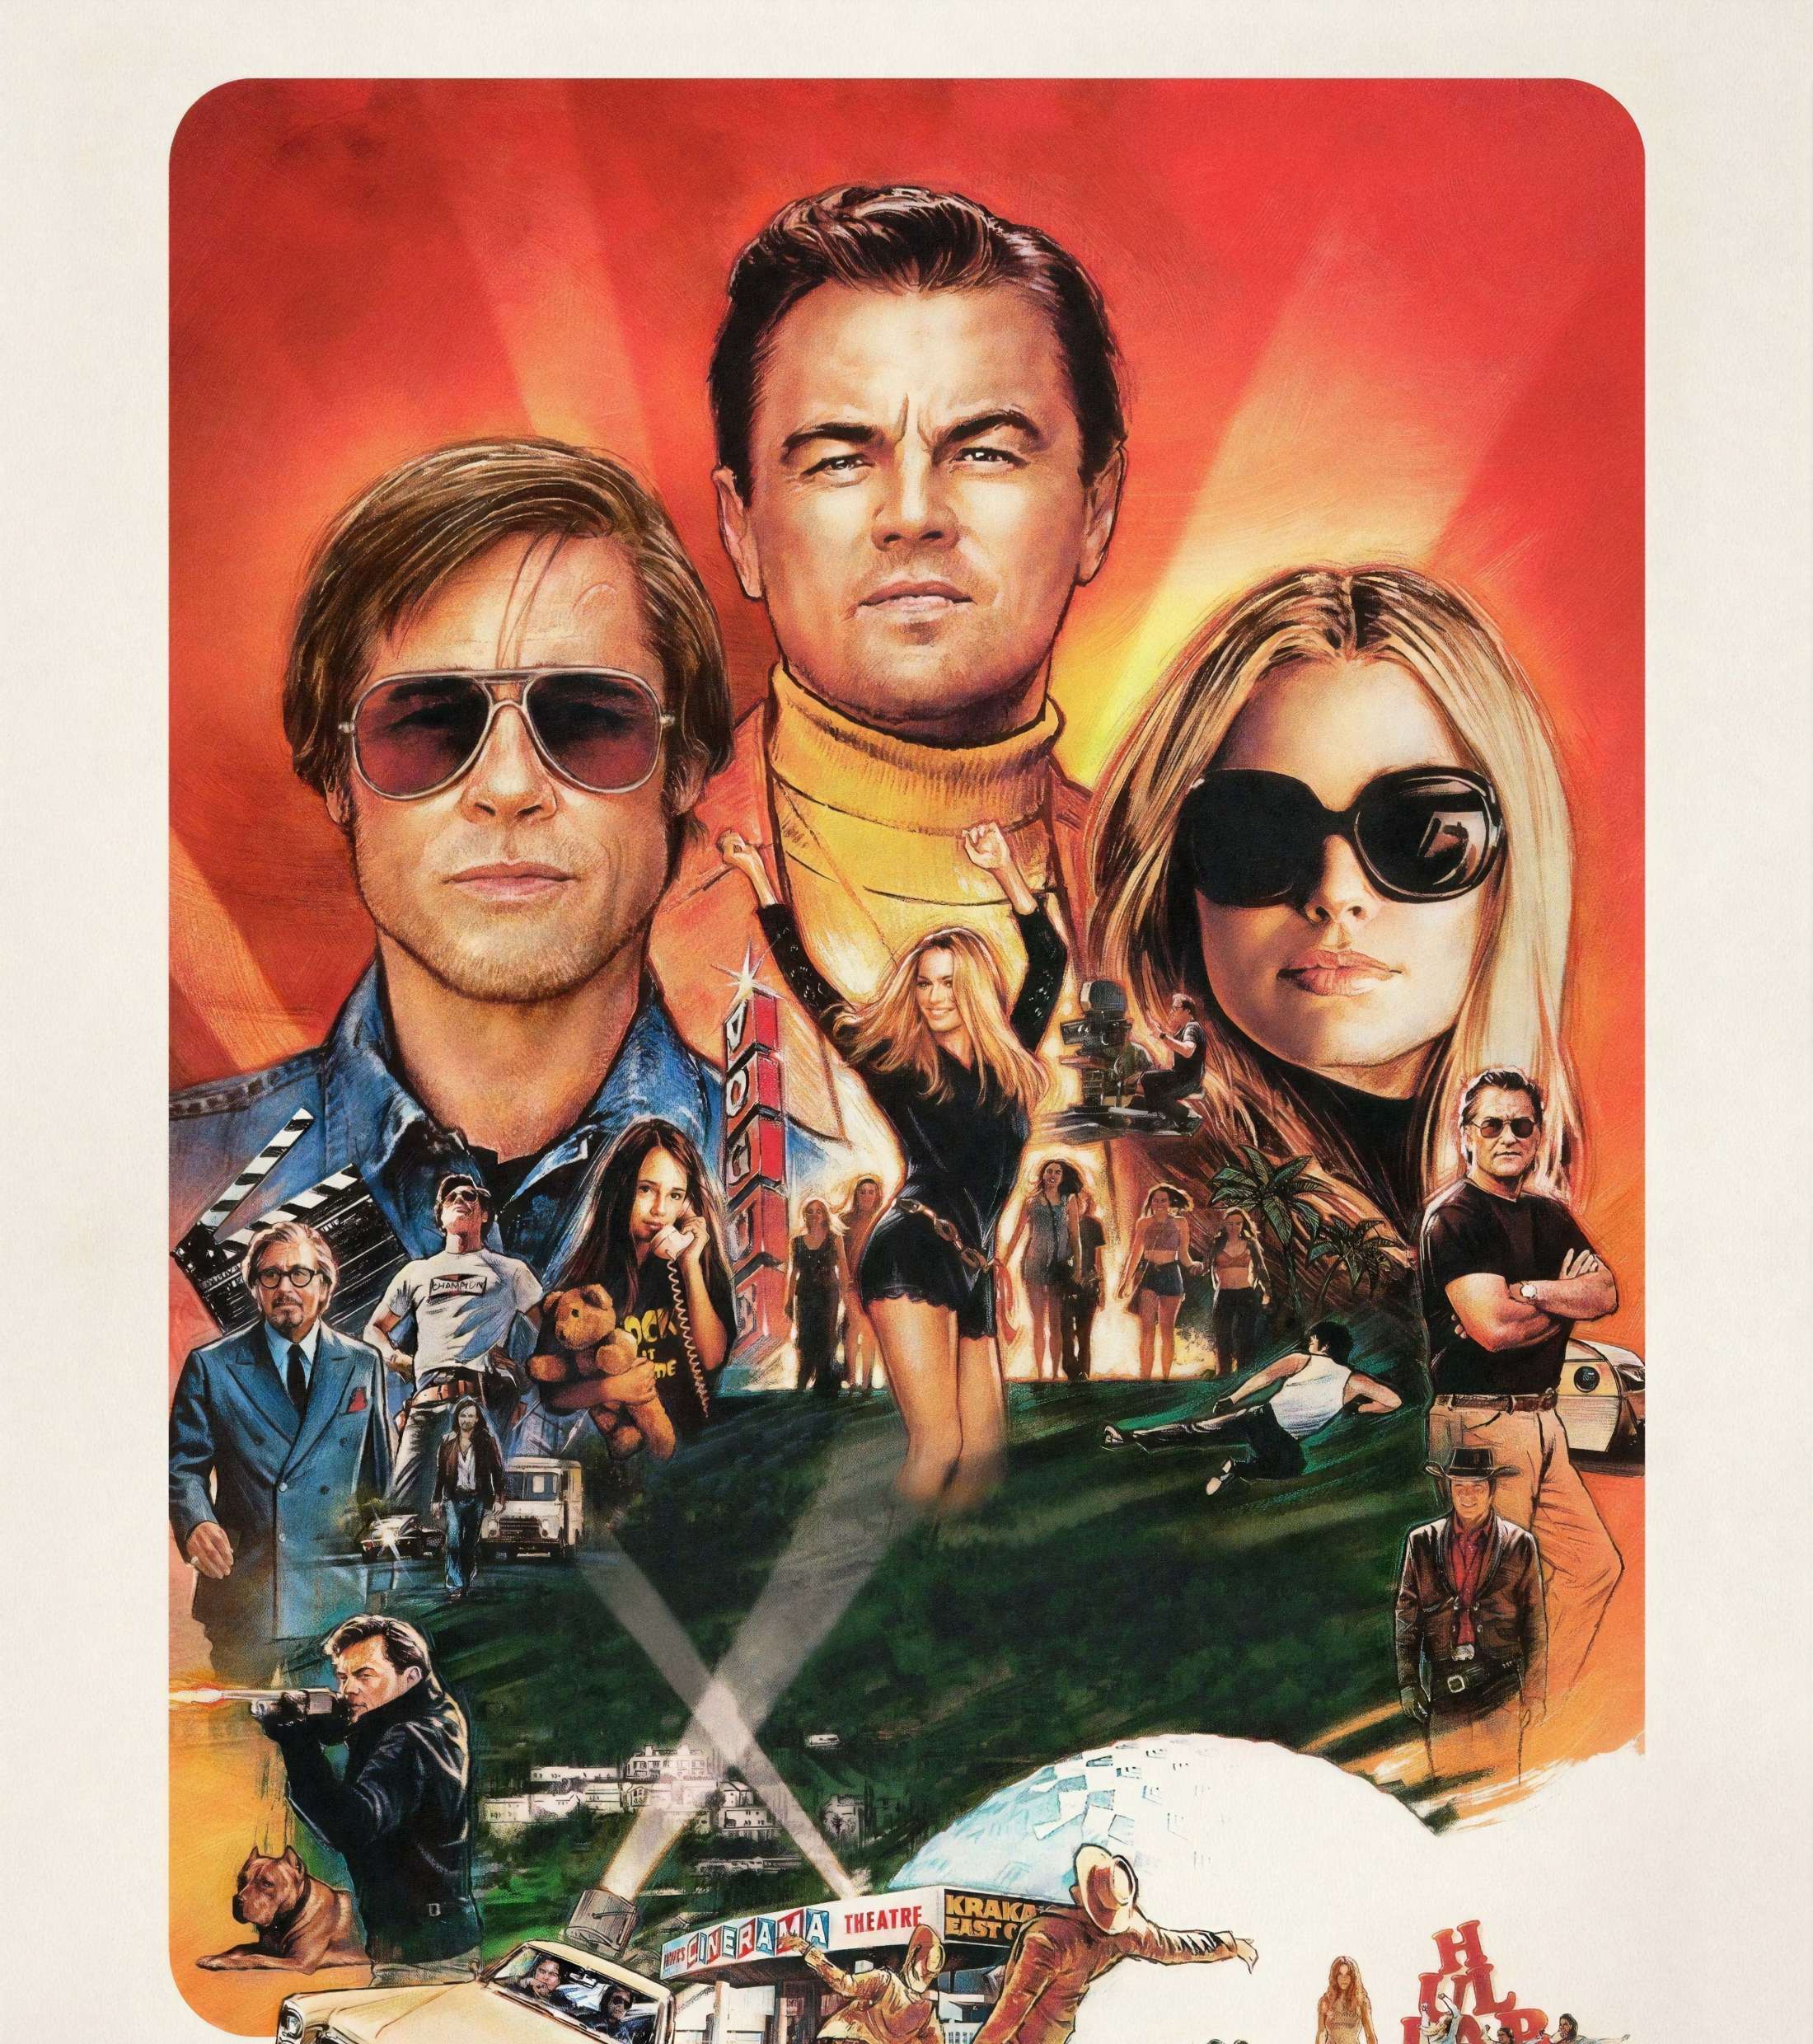 2200x2480 Once Upon A Time In Hollywood 2200x2480 Resolution